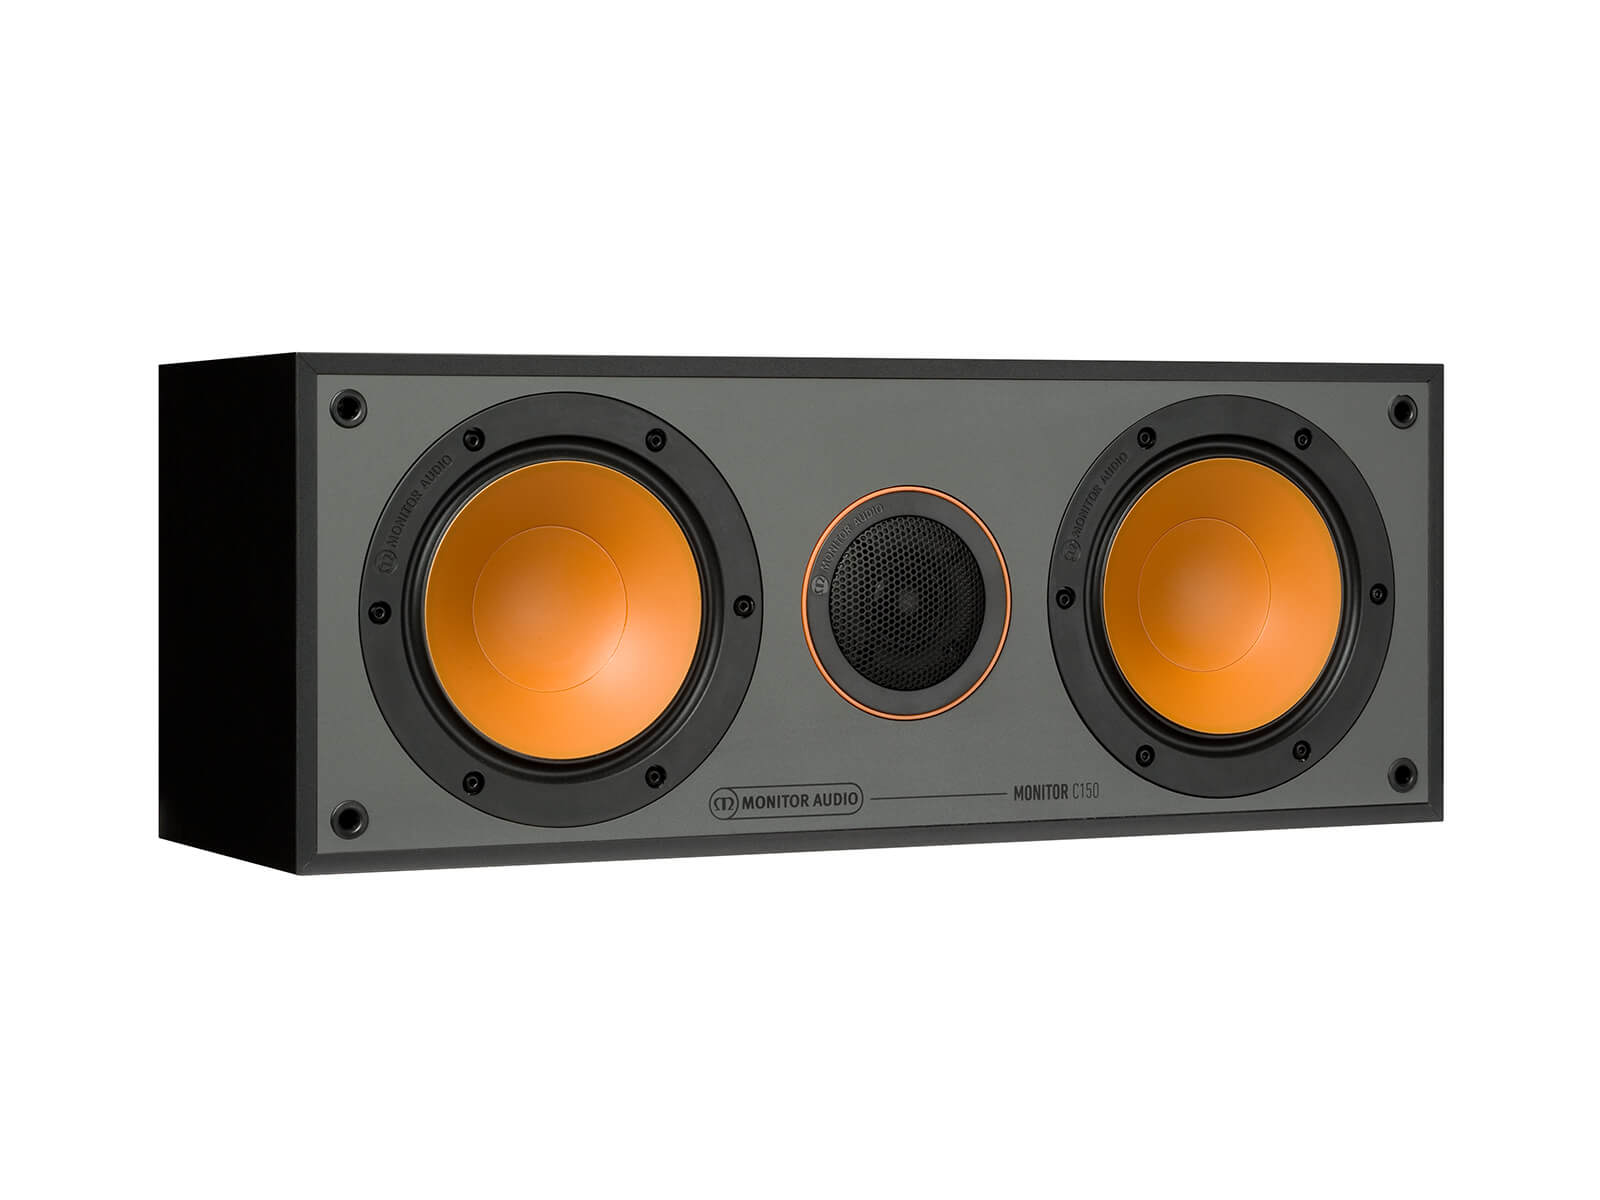 Monitor C150, grille-less centre channel speakers, with a black finish.